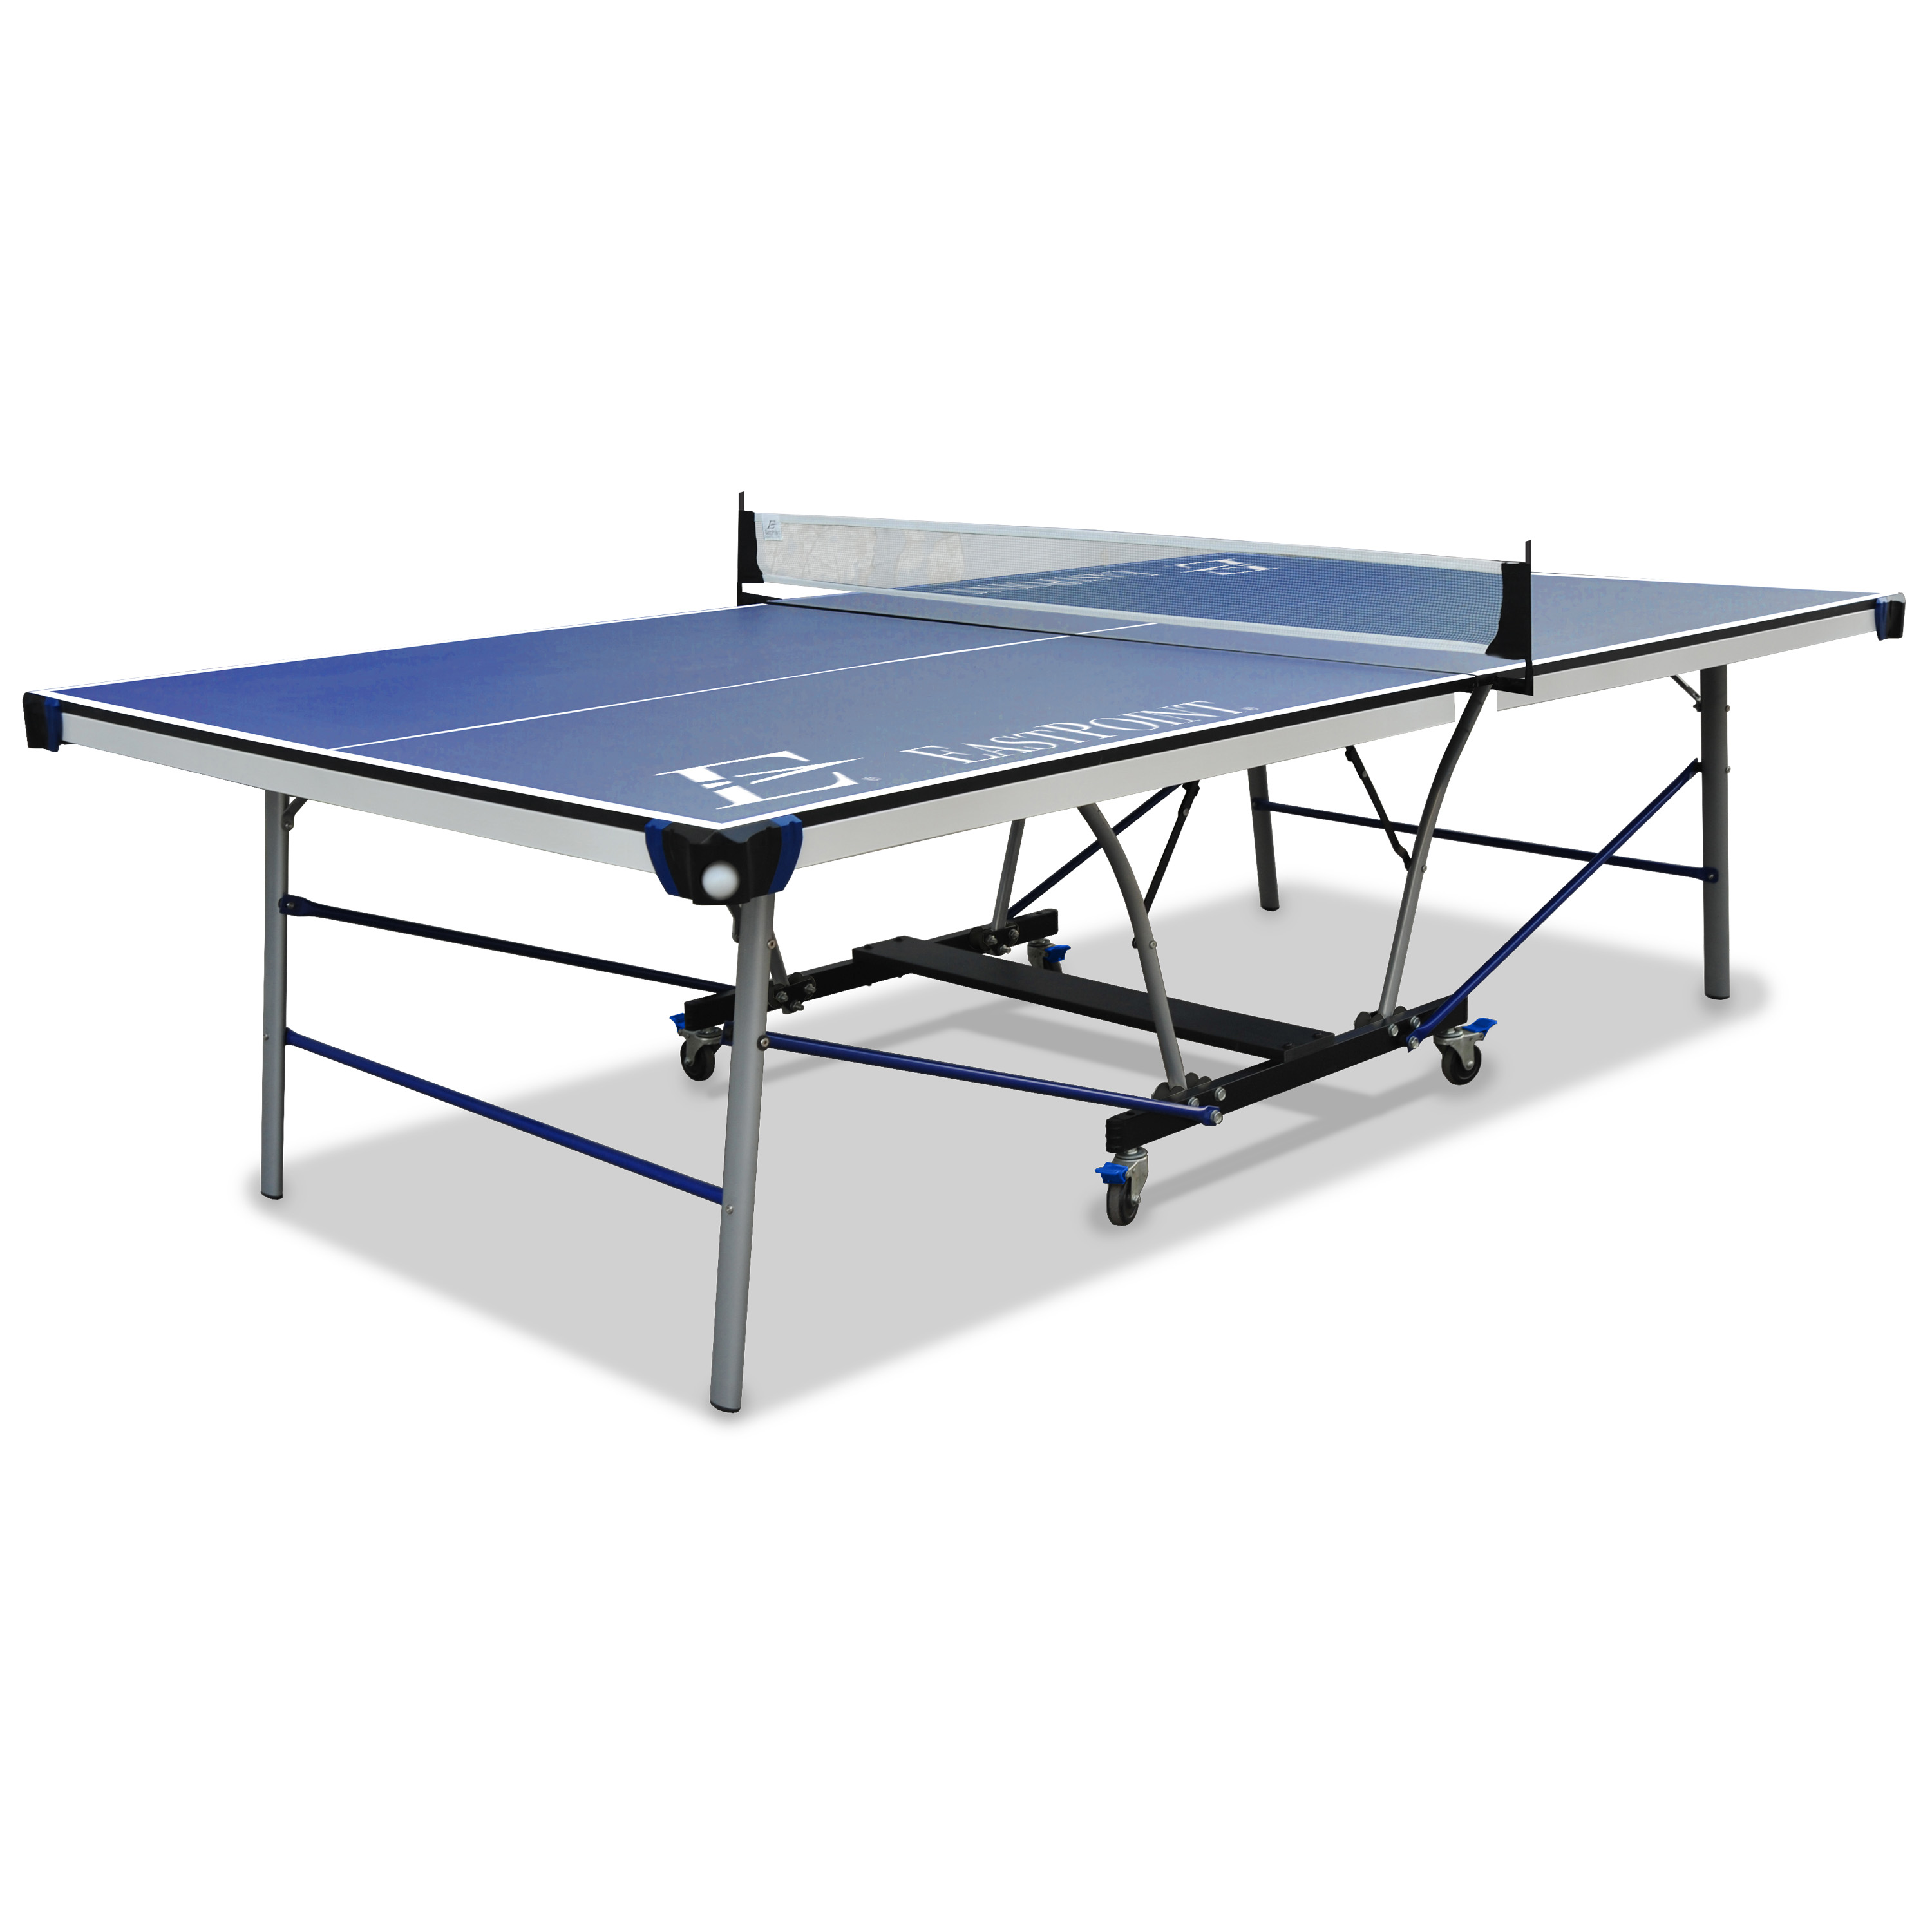 Eastpoint Sports Eps 3200 2 Piece Table Tennis Table 18mm Top